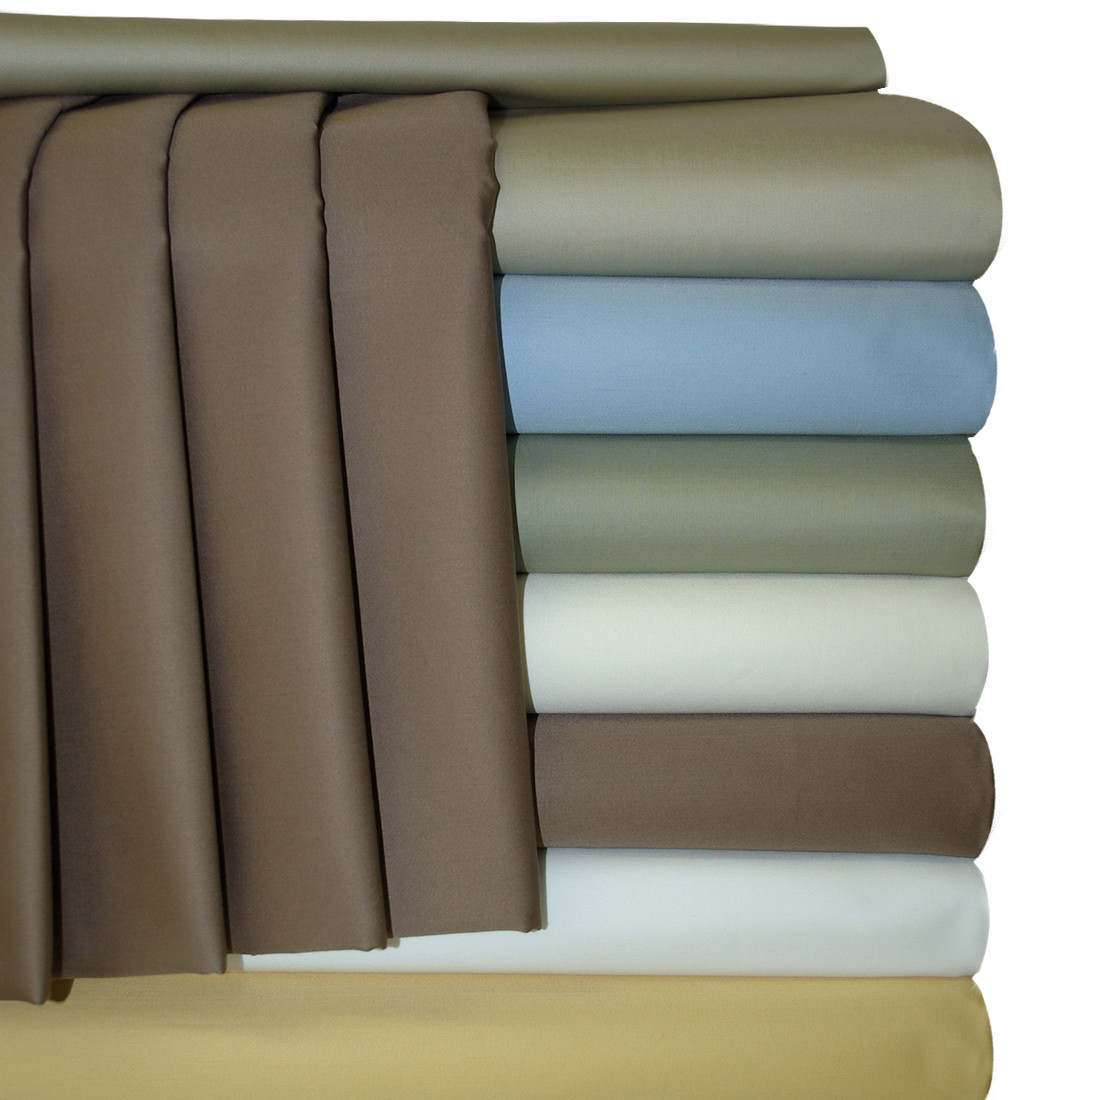 Extra deep pocket queen fitted sheets - King Size Deep Pocket Sheets Available Colors